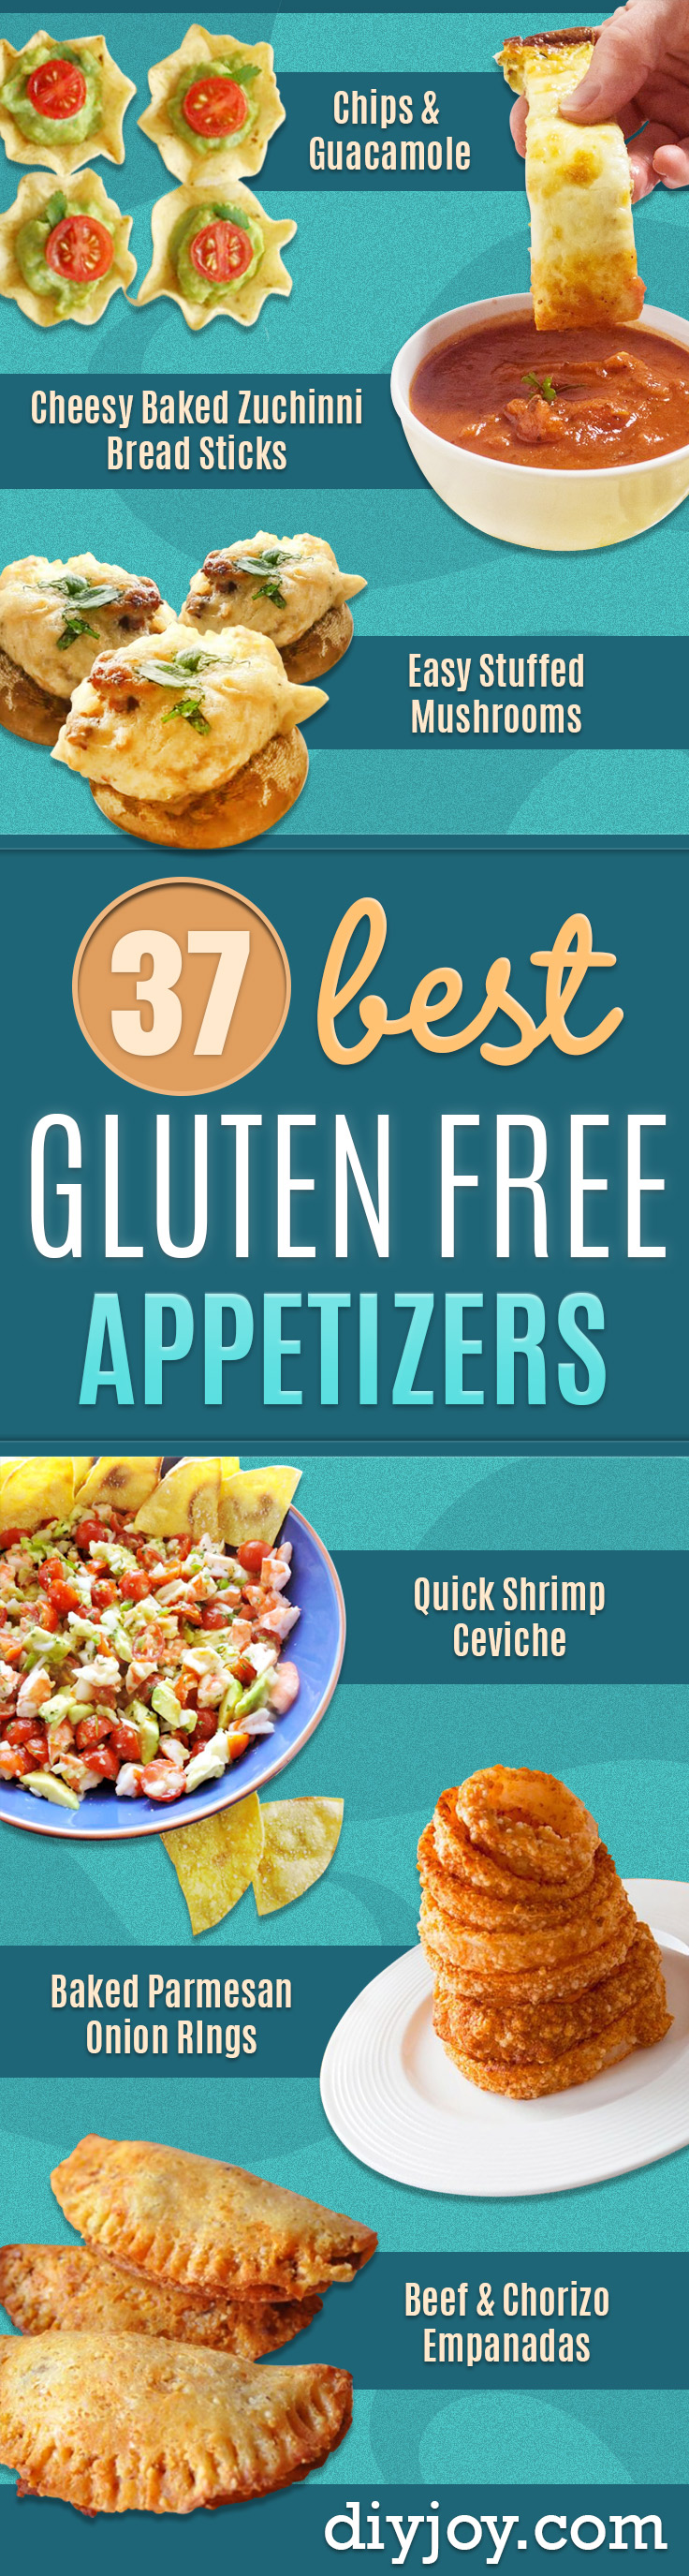 Gluten Free Appetizers - Easy Flourless and Glutenfree Snacks, Wraps, Finger Foods and Snack Recipes - Recipe Ideas for Gluten Free Diets - Spinach and Cheese Dips, Vegetable Spreads, Sushi rolls, Quick Grill Foods, Party Trays, Dessert Bites, Healthy Veggie and Fruit Appetizer Tutorials #glutenfree #appetizers #appetizerrecipes #glutenfreerecipes #recipeideas #diyjoy http://diyjoy.com/gluten-free-appetizers